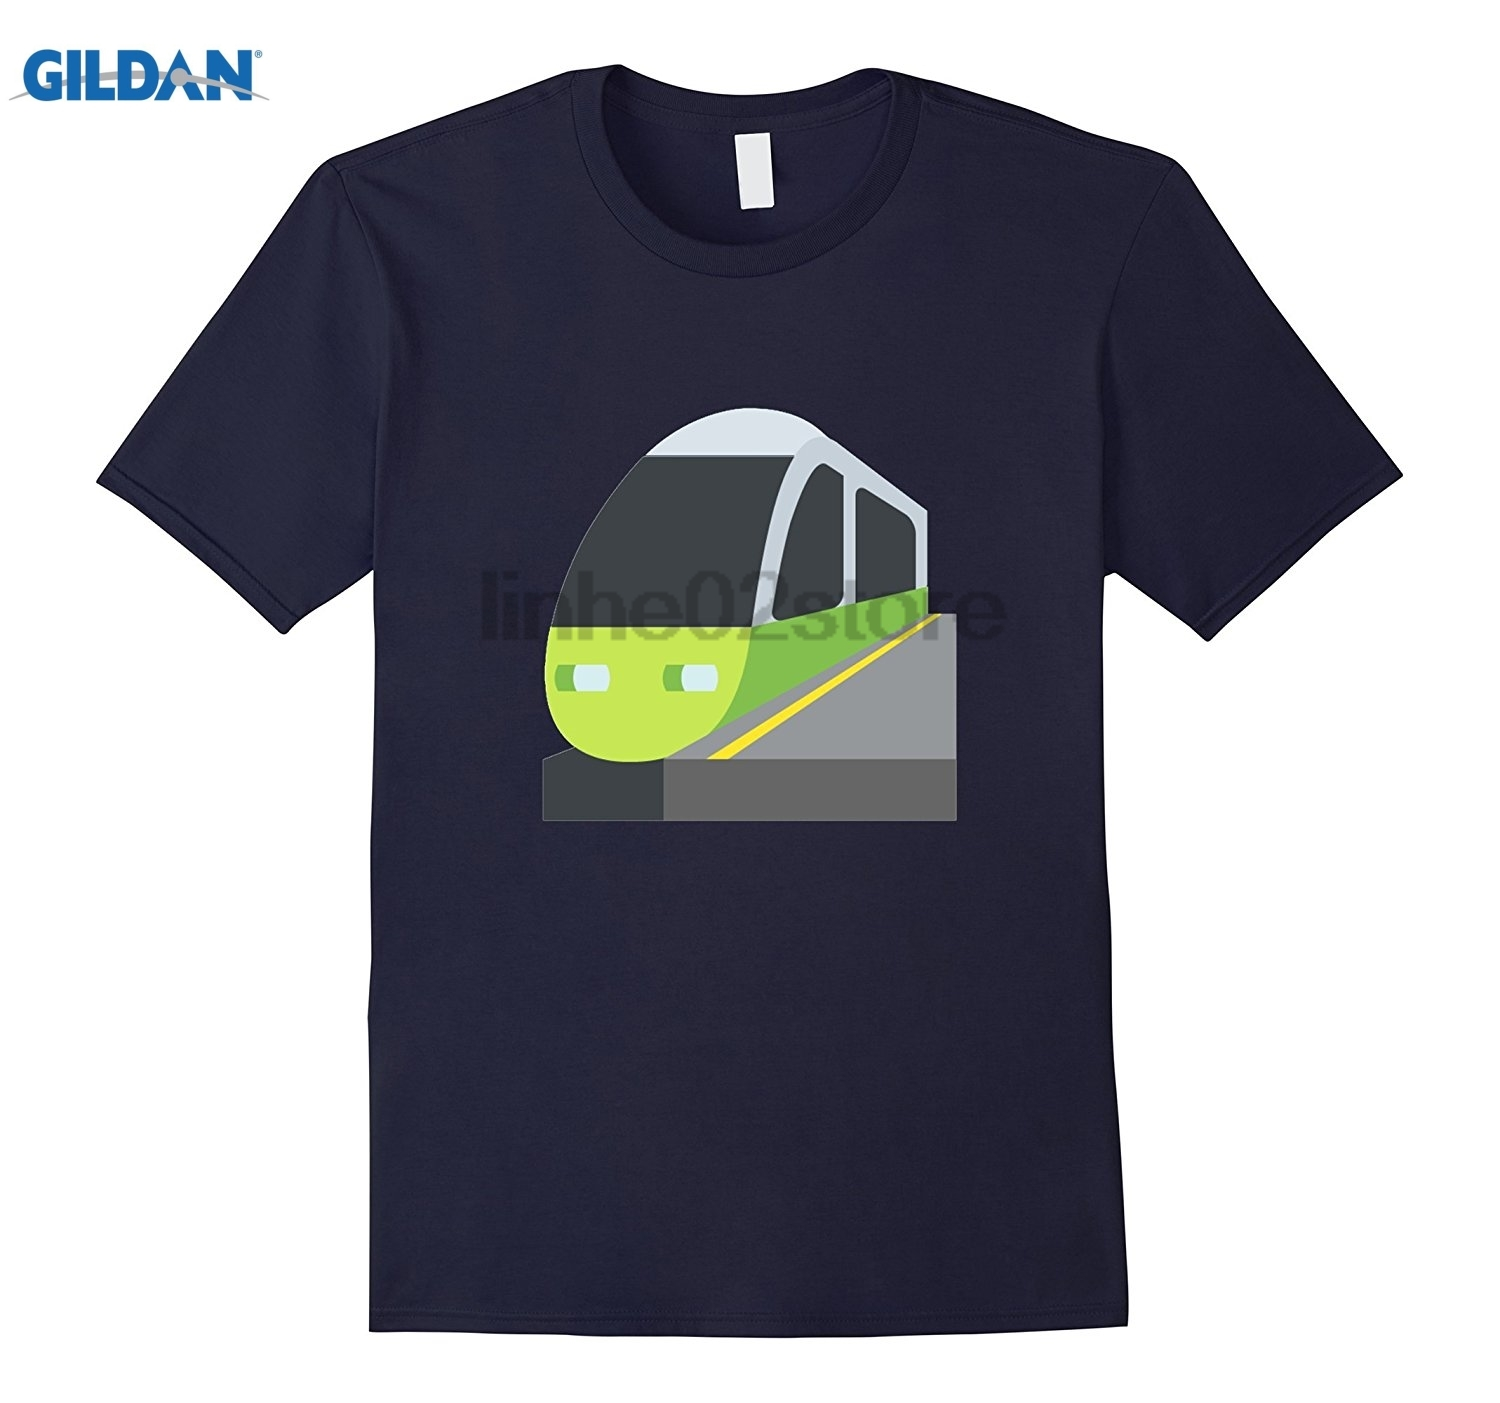 GILDAN Train Station Emoji T-Shirt Track Rail Subway Track Crossing glasses Womens T-shirt Mothers Day Ms. T-shirt